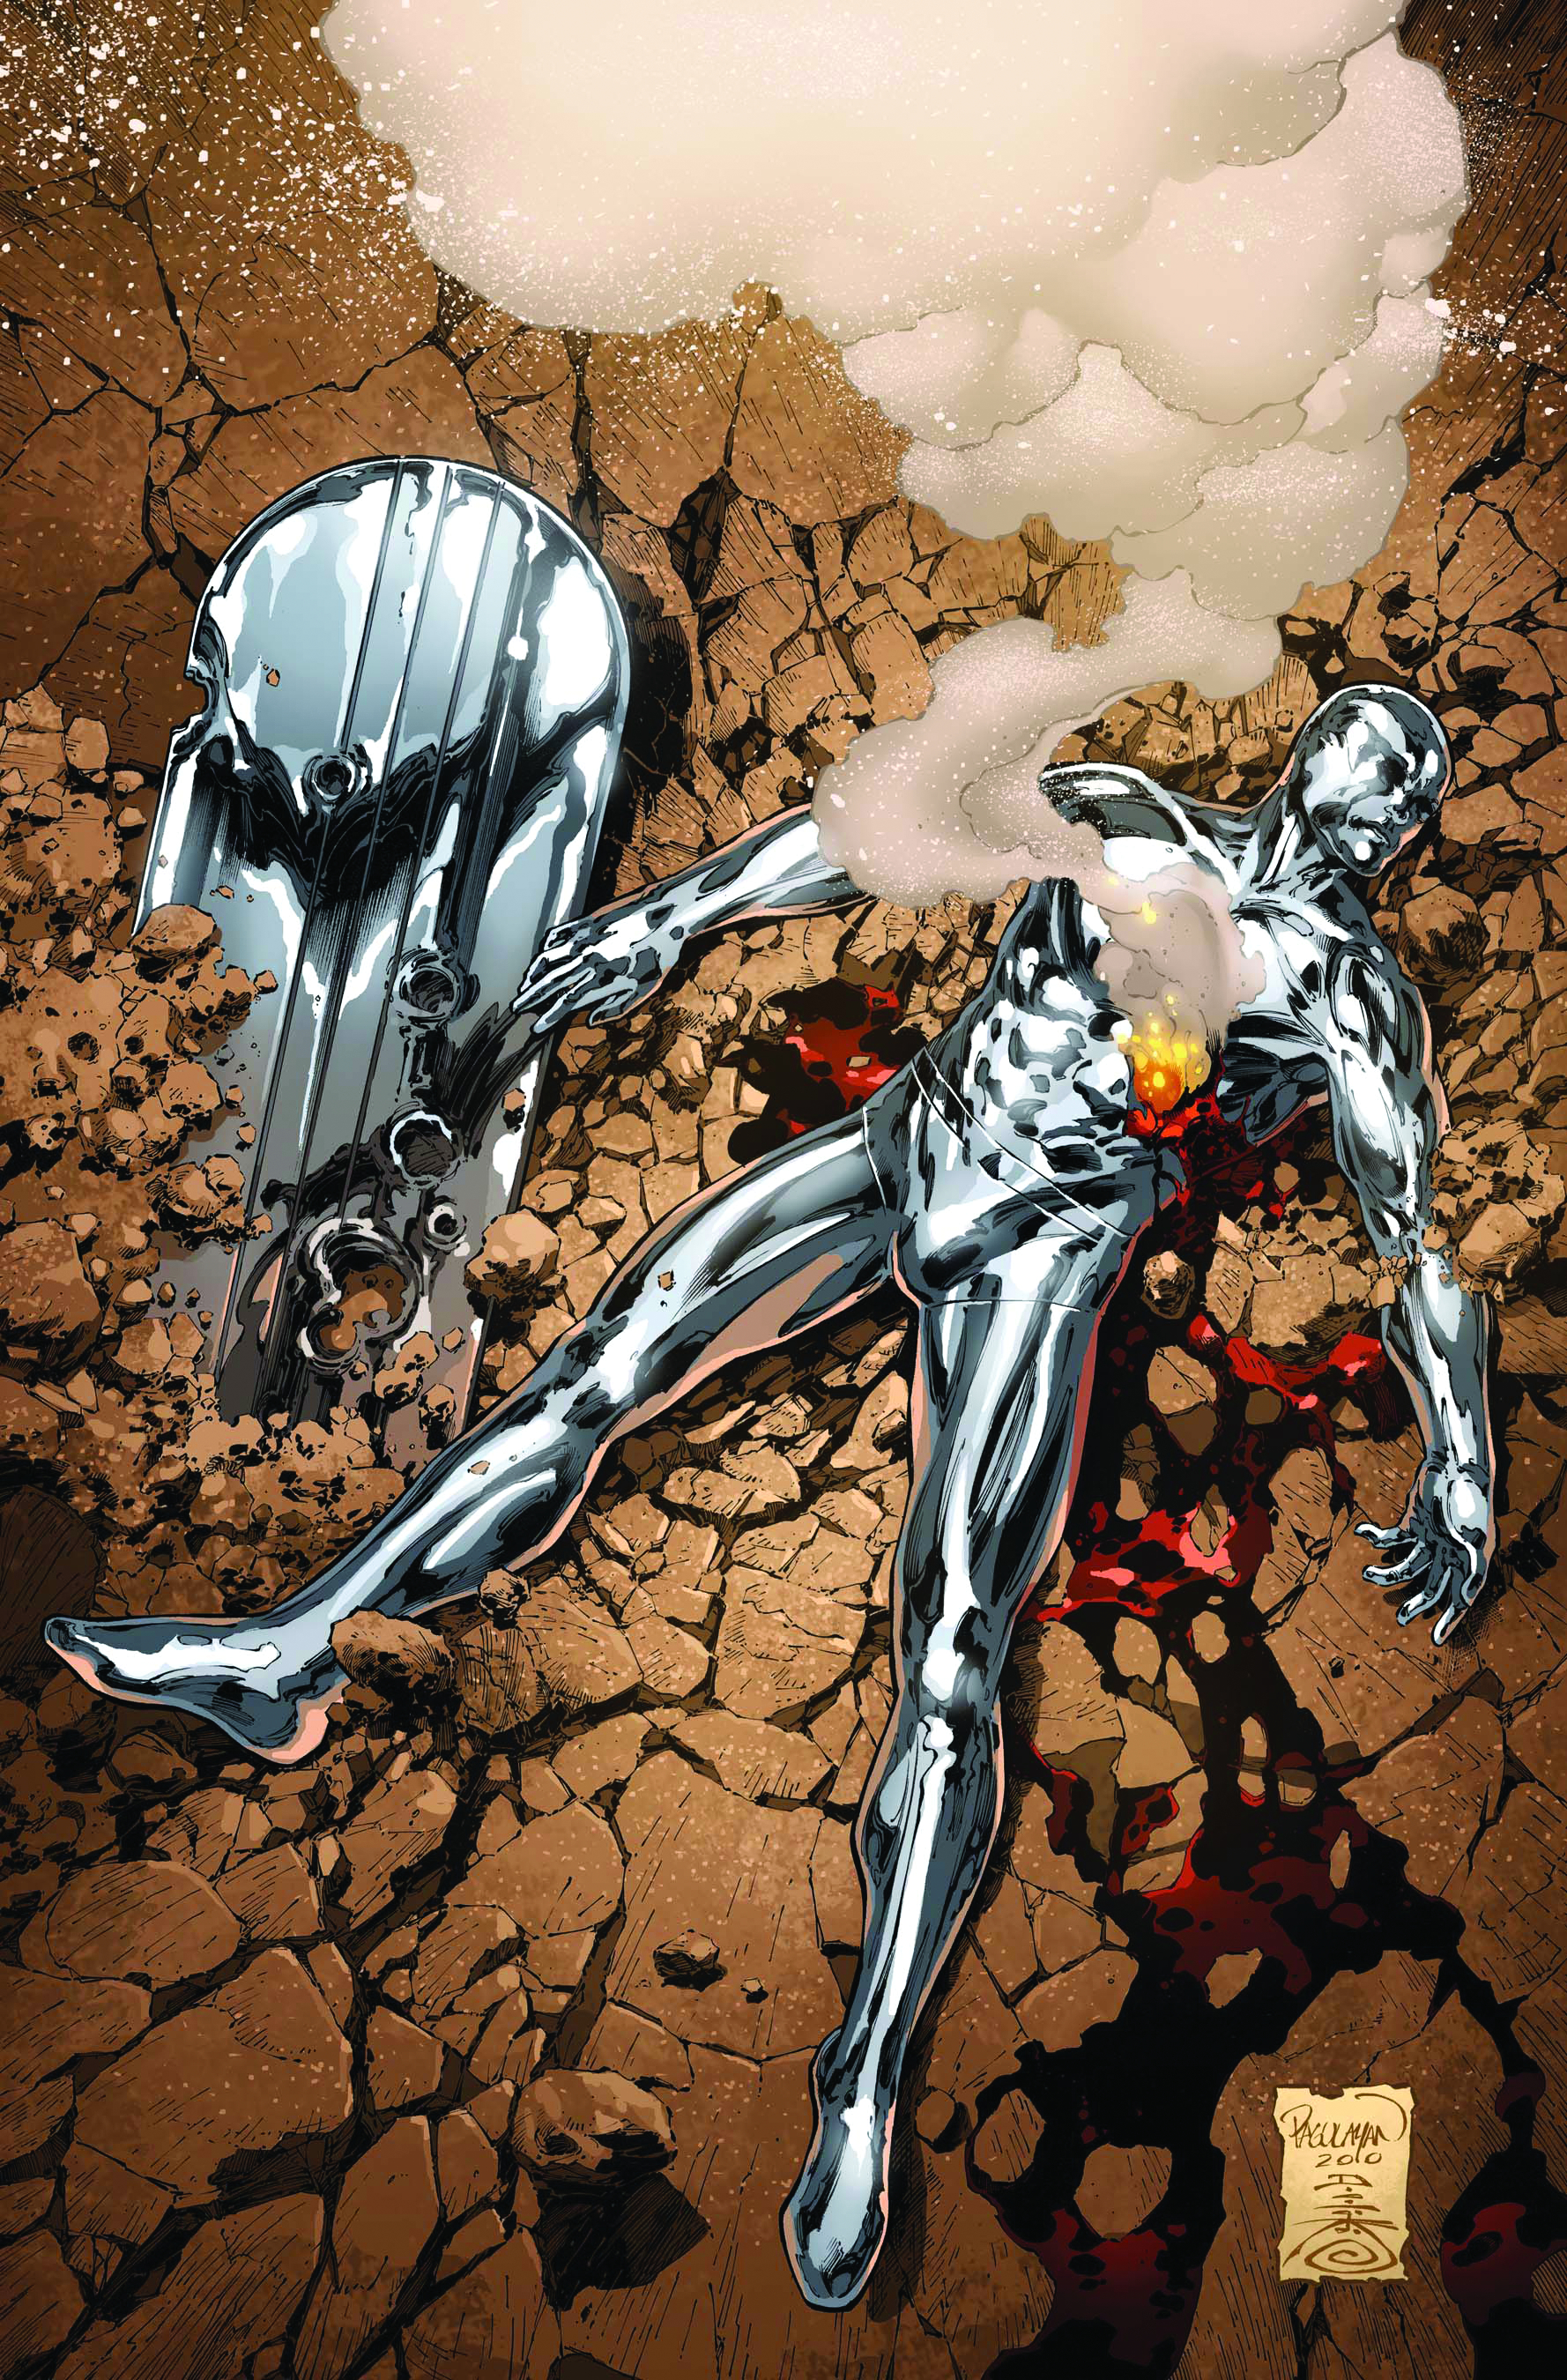 SILVER SURFER #2 (OF 5)